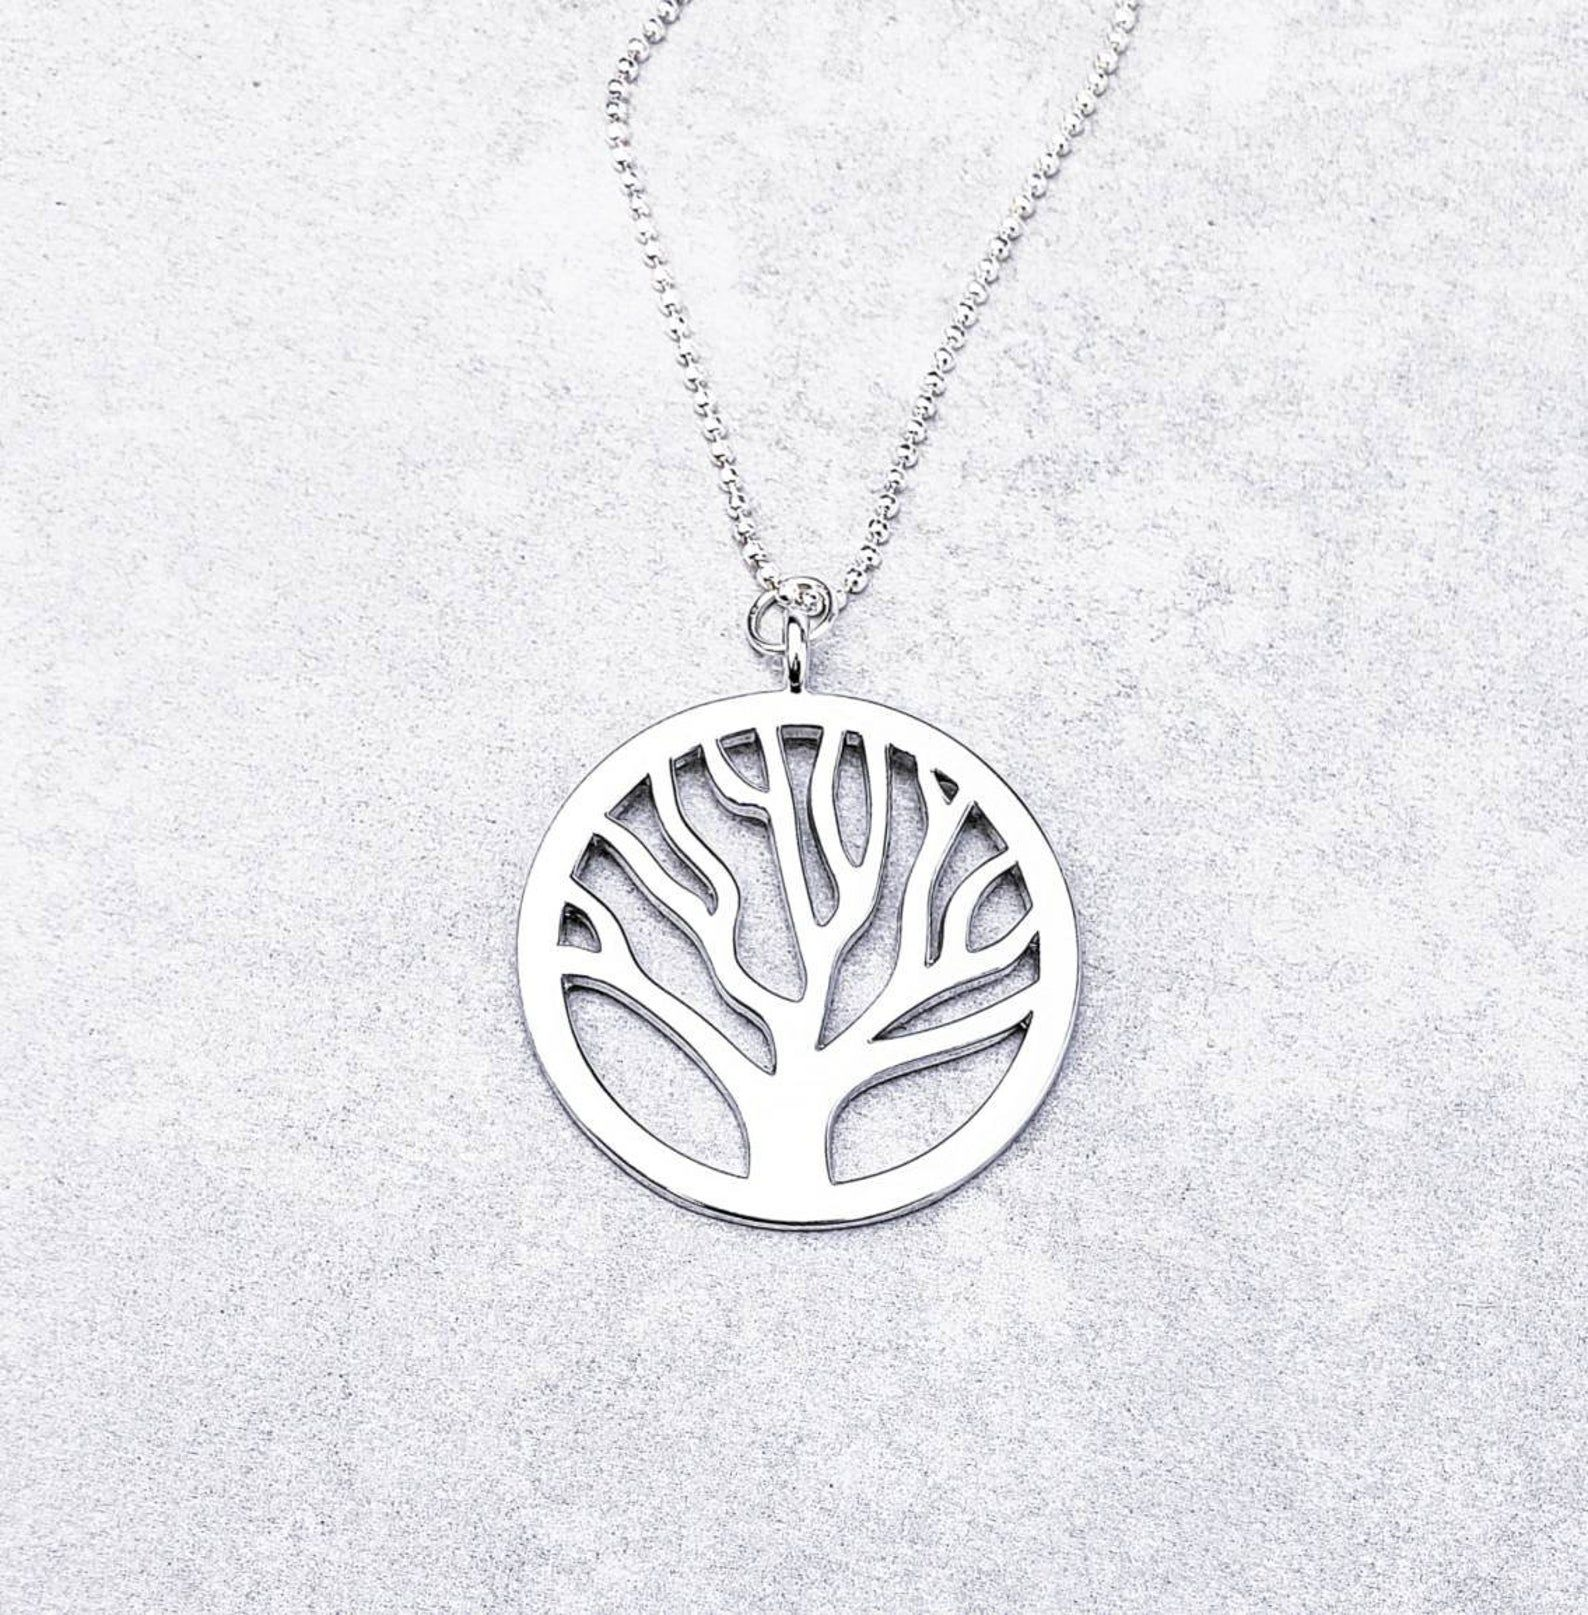 Tree of life charm chain link cable silver lobster clasp necklace